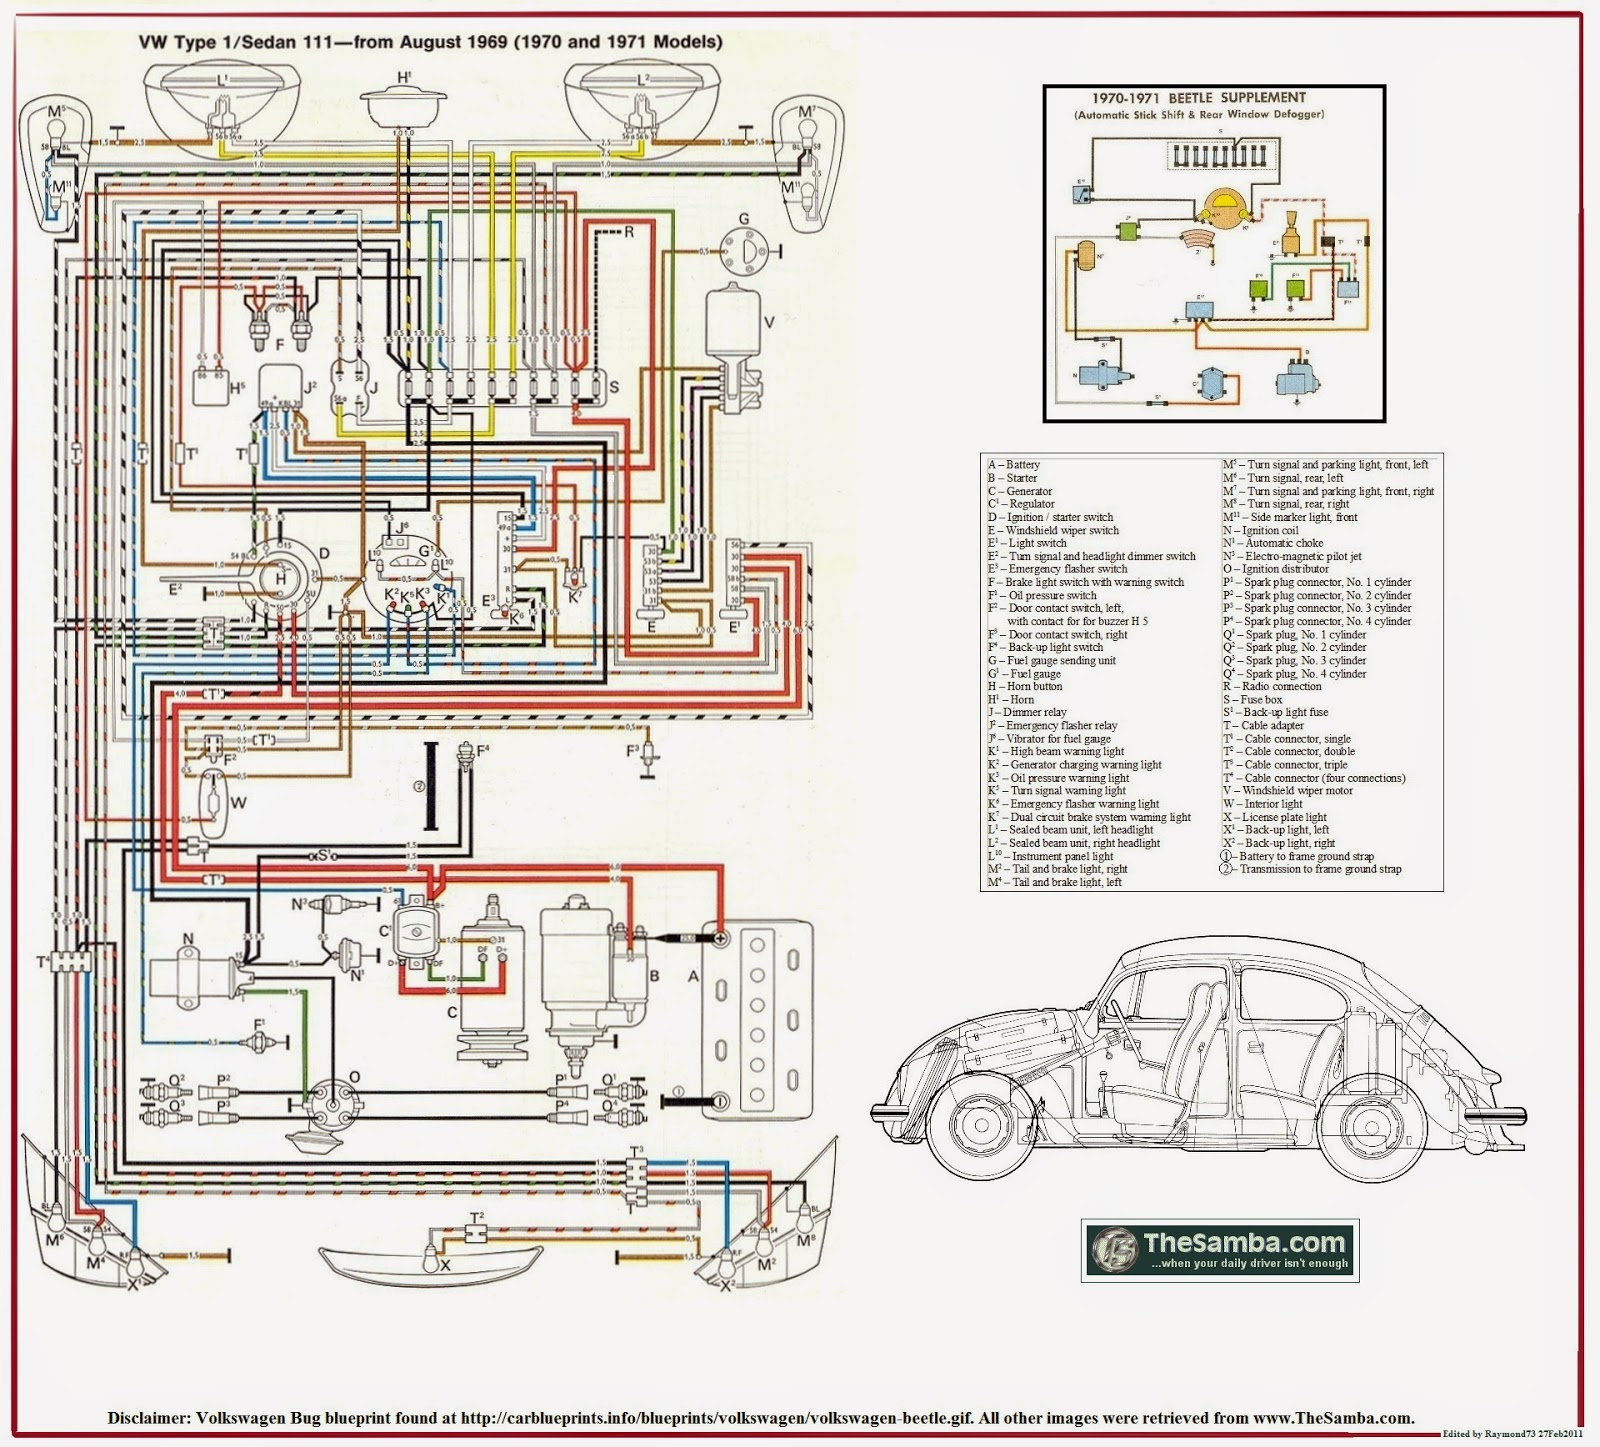 Wiring Diagram For A 1977 Vw Superbeetle on